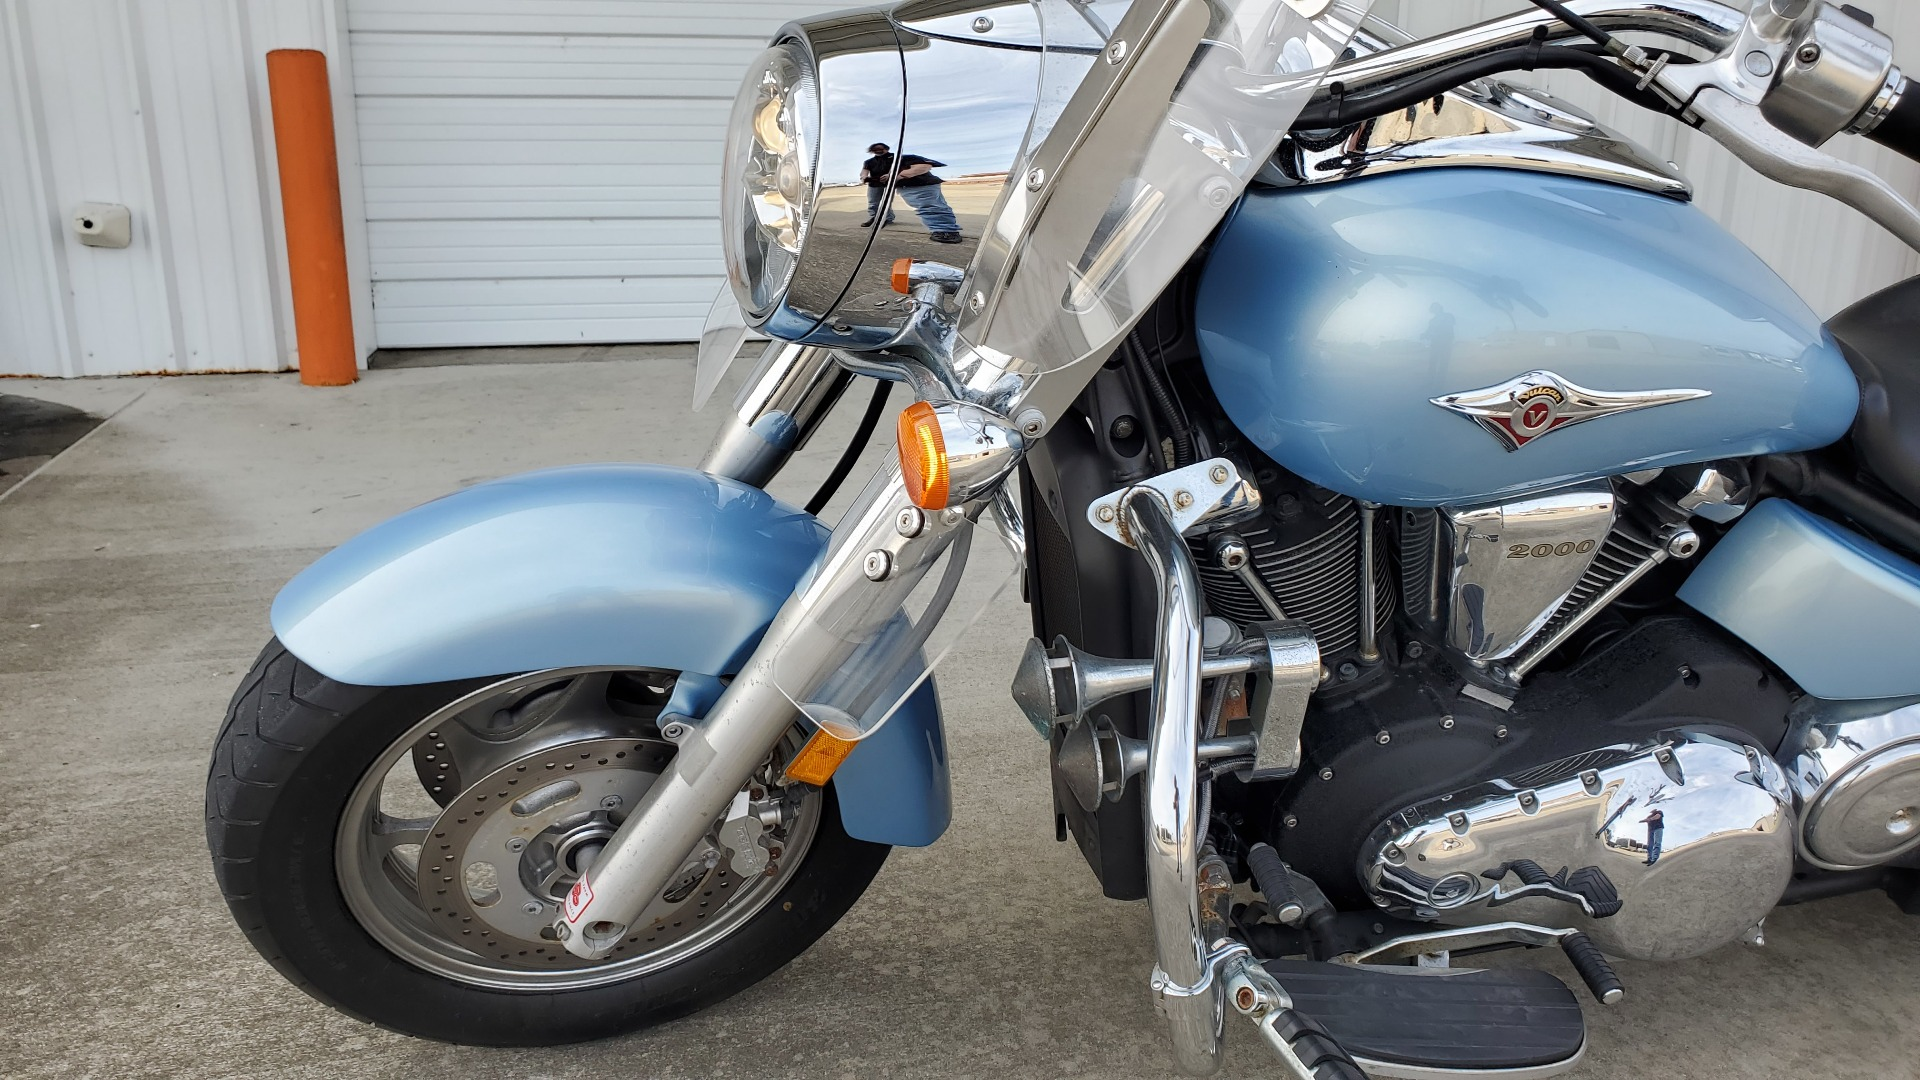 2004 kawasaki vulcan 2000 for sale near me - Photo 6